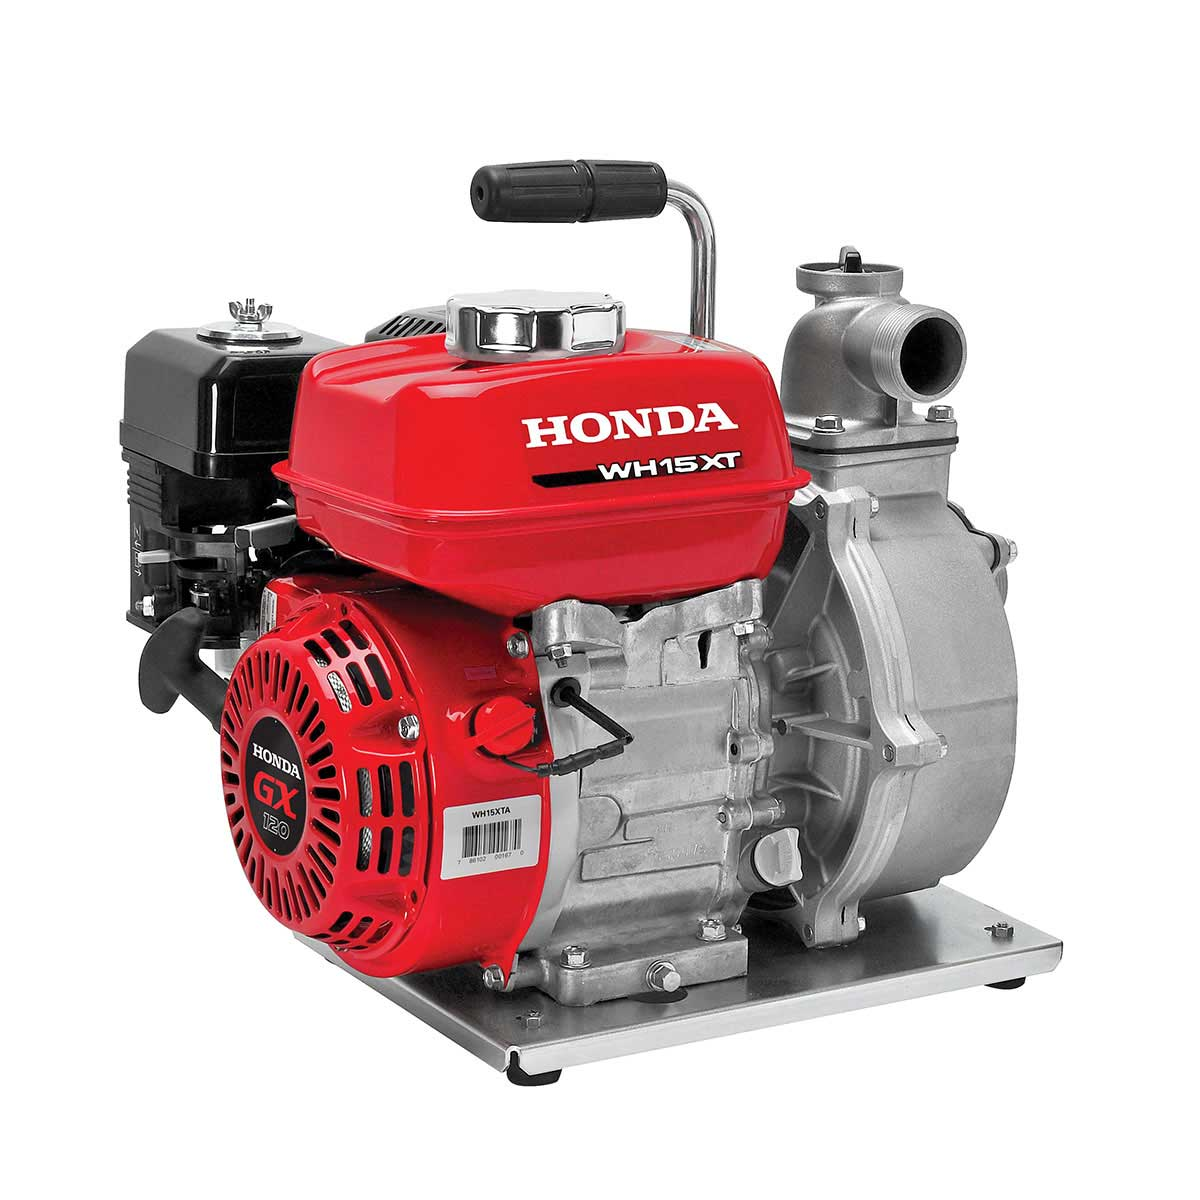 Honda WH15 High Pressure Water Pump